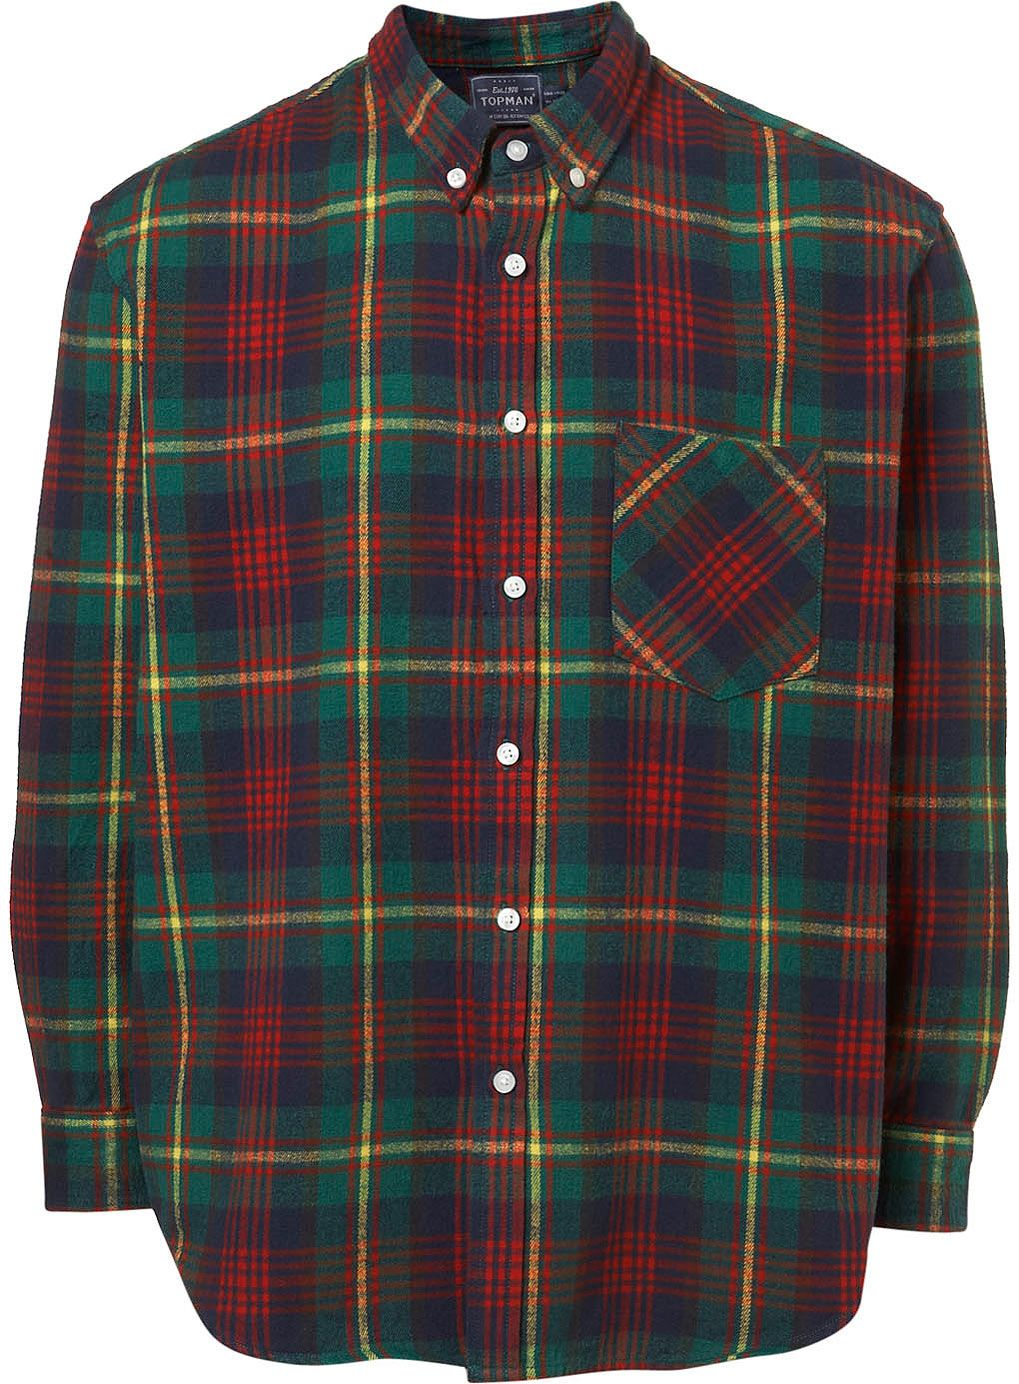 Green Tartan Flannel Shirt, Luxire $70 | Owned-Casual-Tops ...